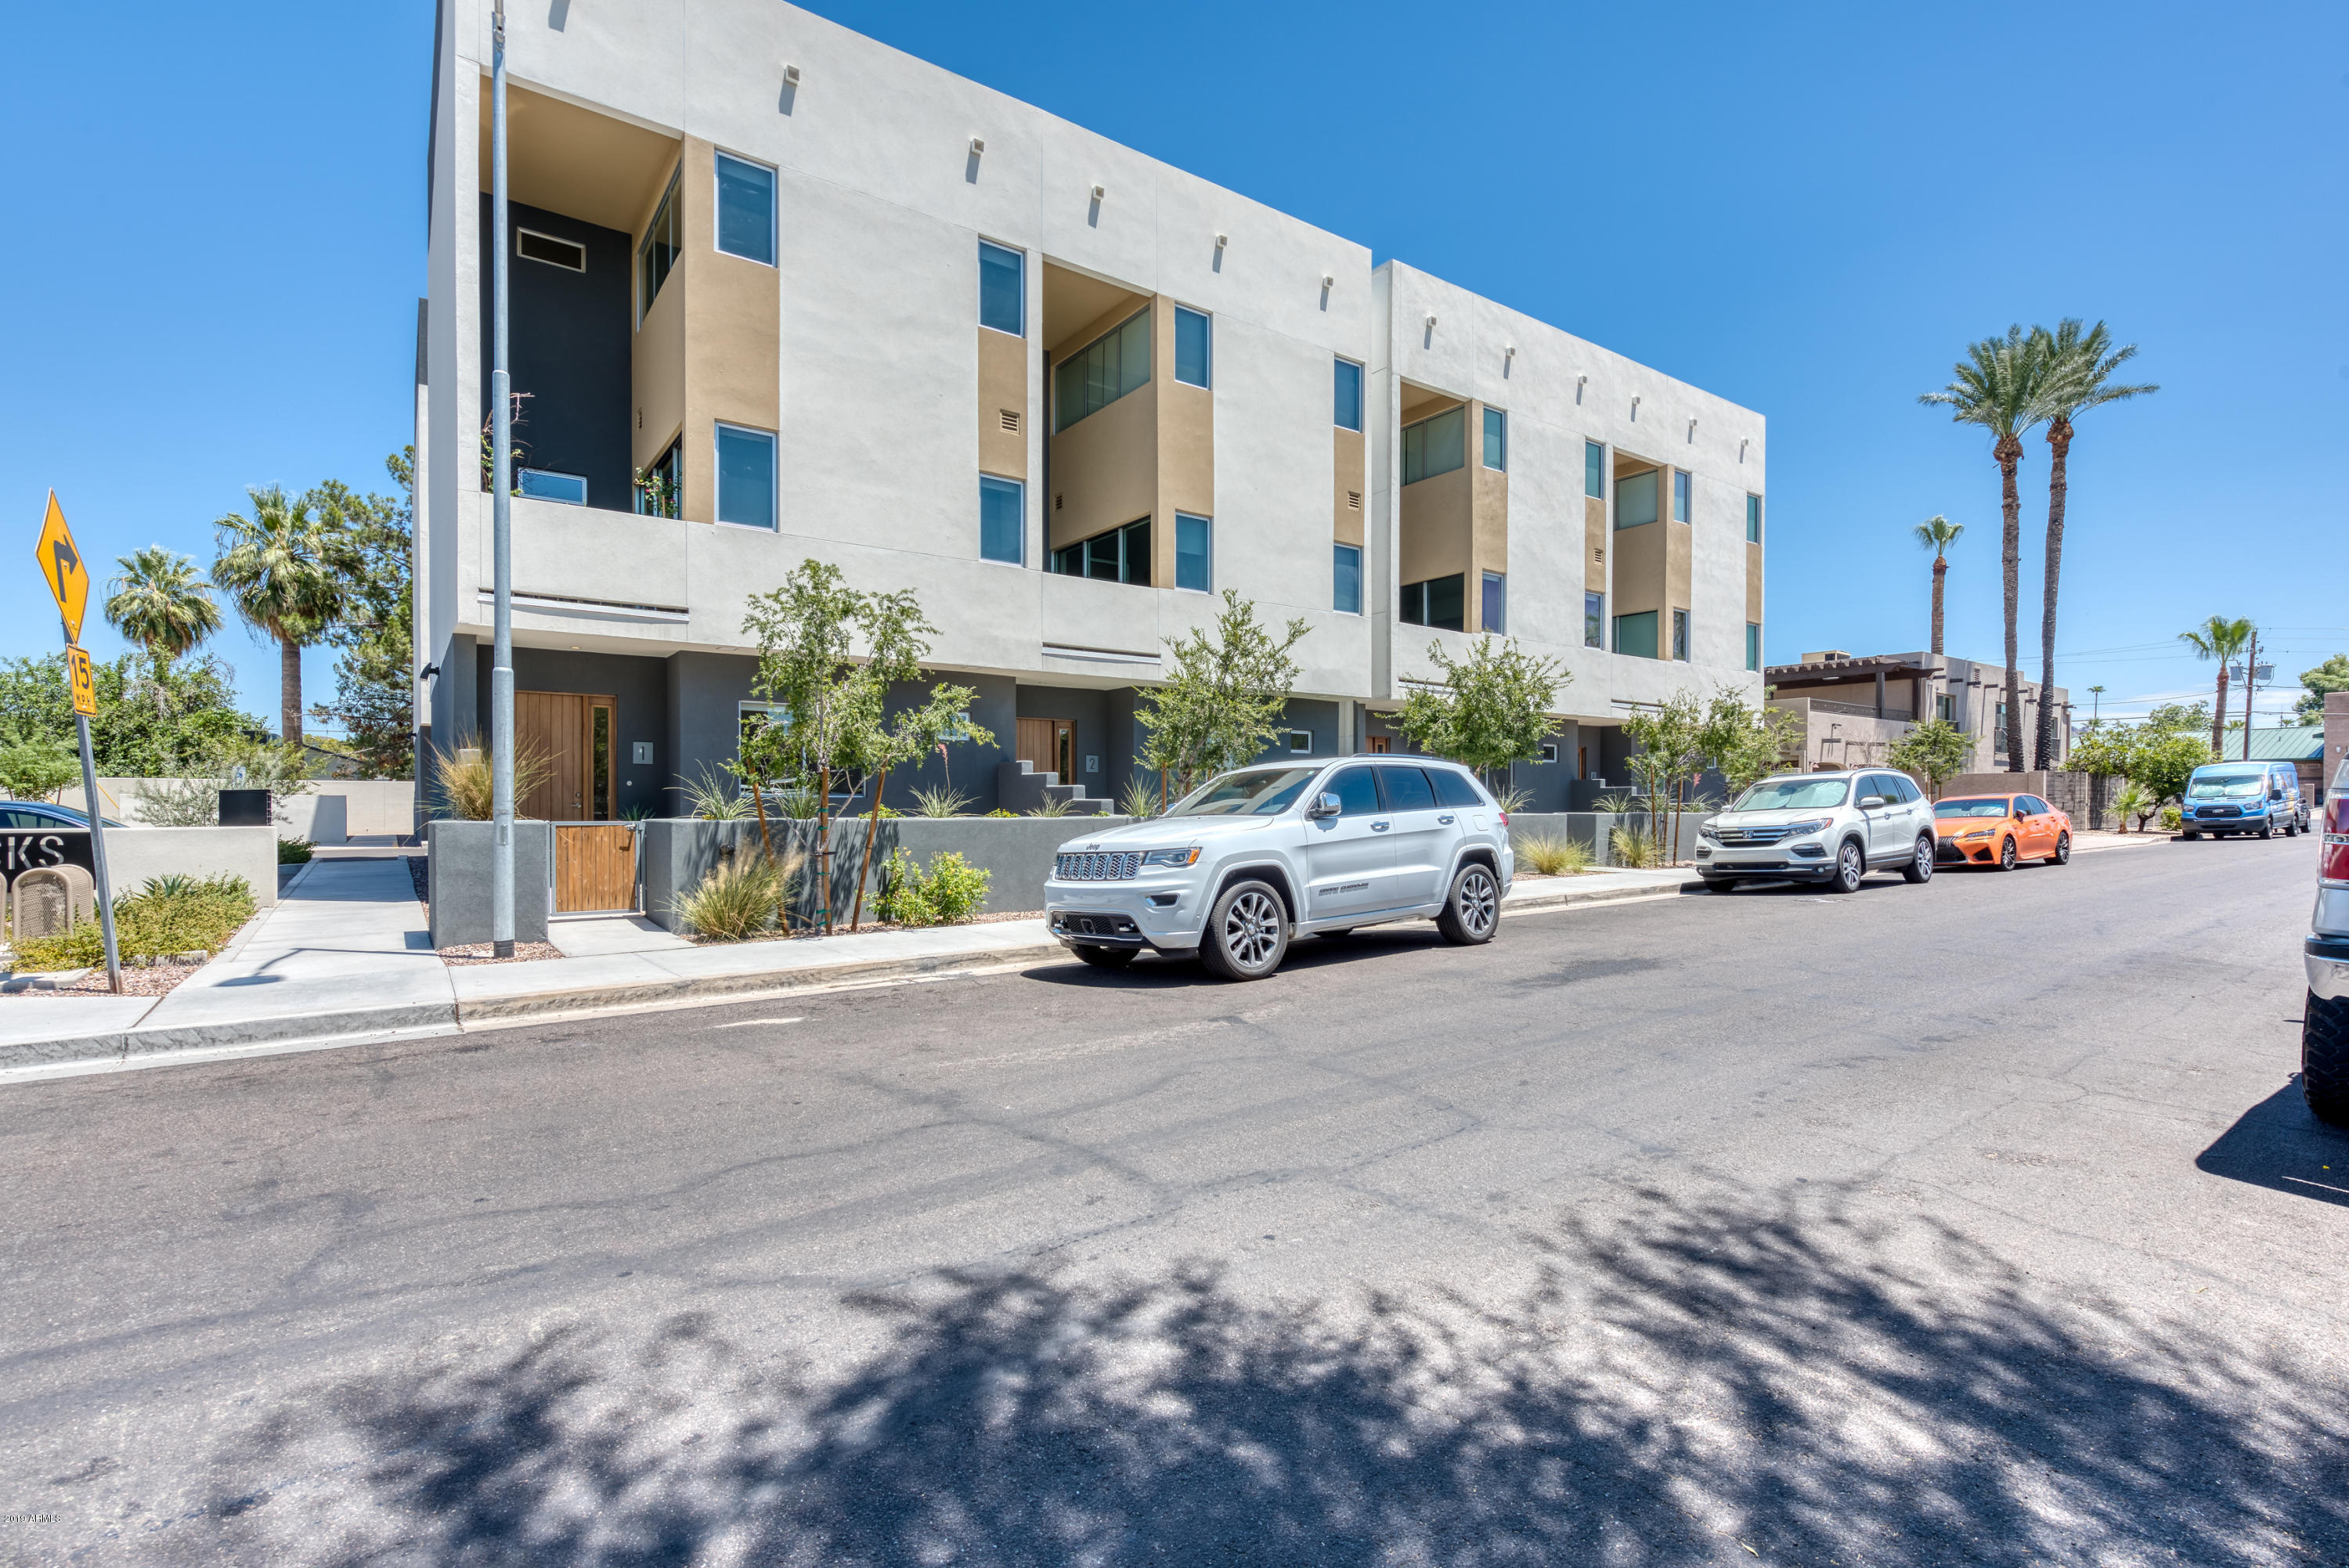 Photo of 3150 E GLENROSA Avenue #1, Phoenix, AZ 85016